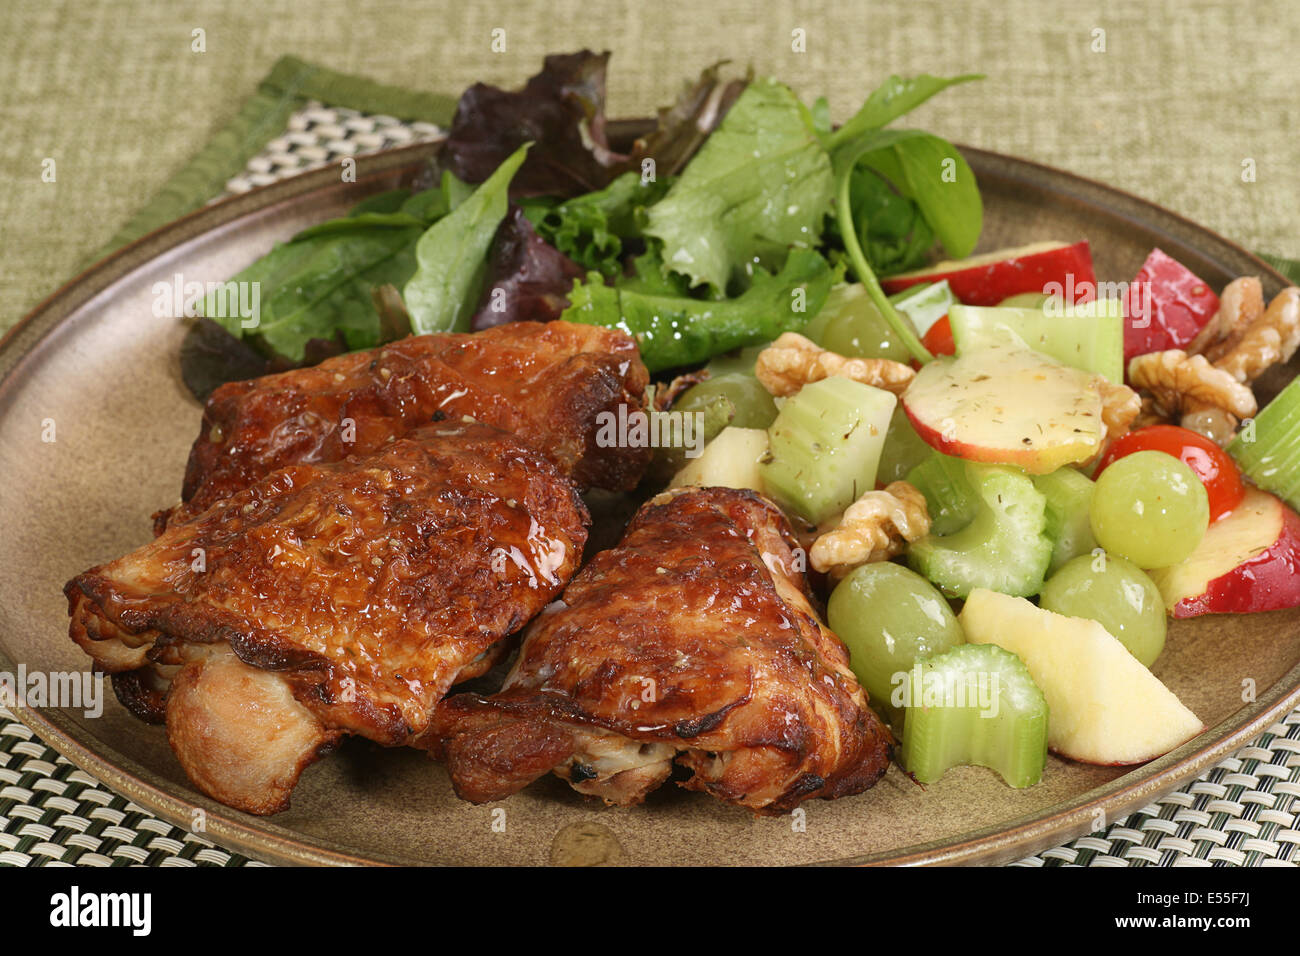 Roast chicken thighs with a mixed salad - Stock Image